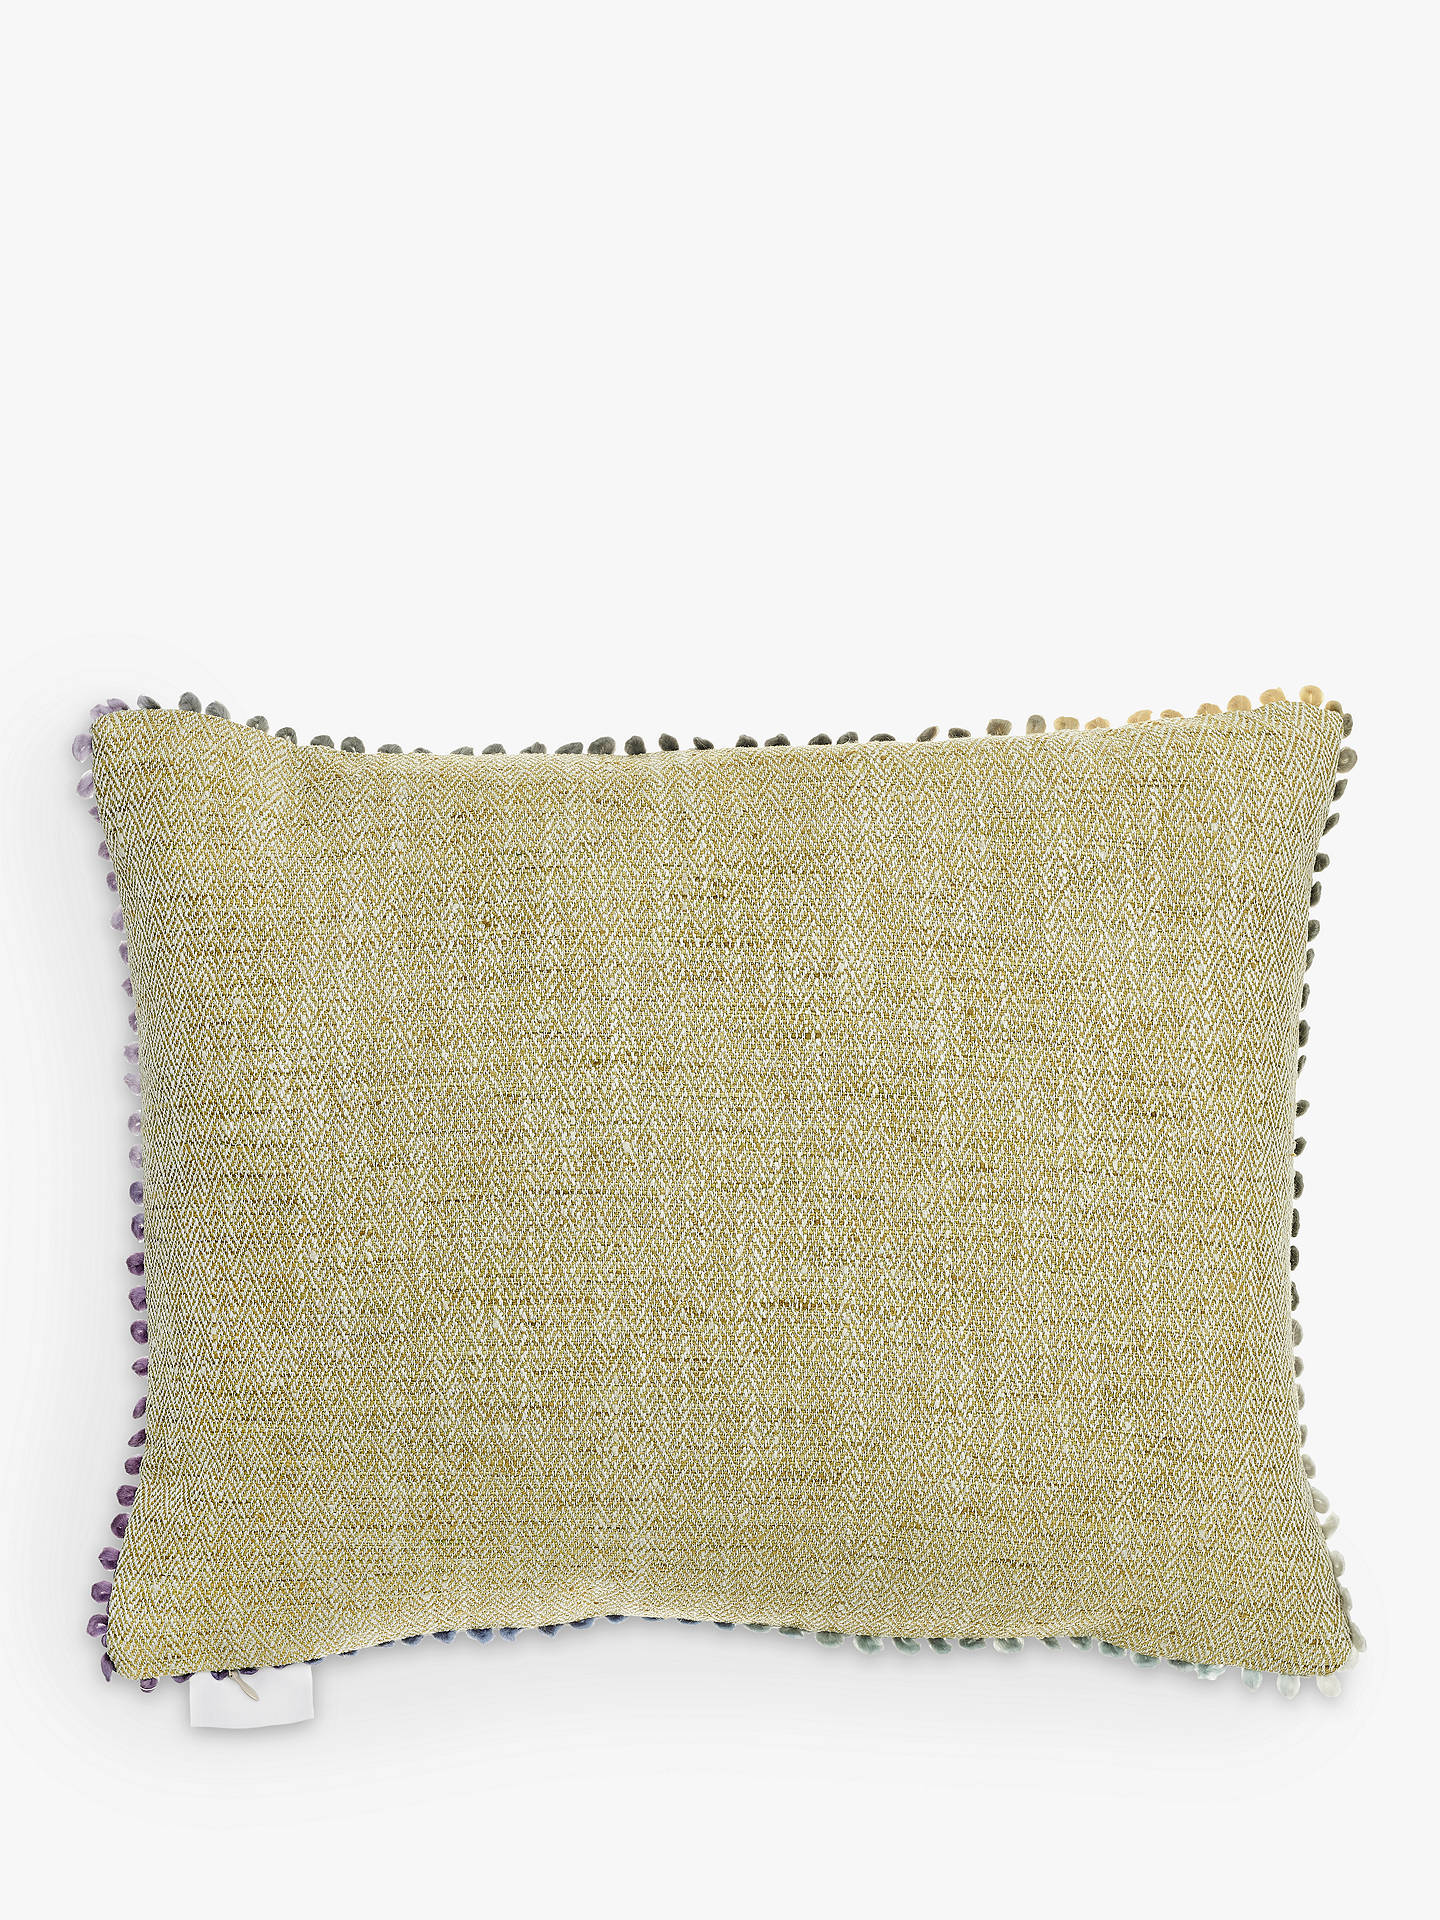 BuyVoyage Chaffinch Cushion, Multi Online at johnlewis.com